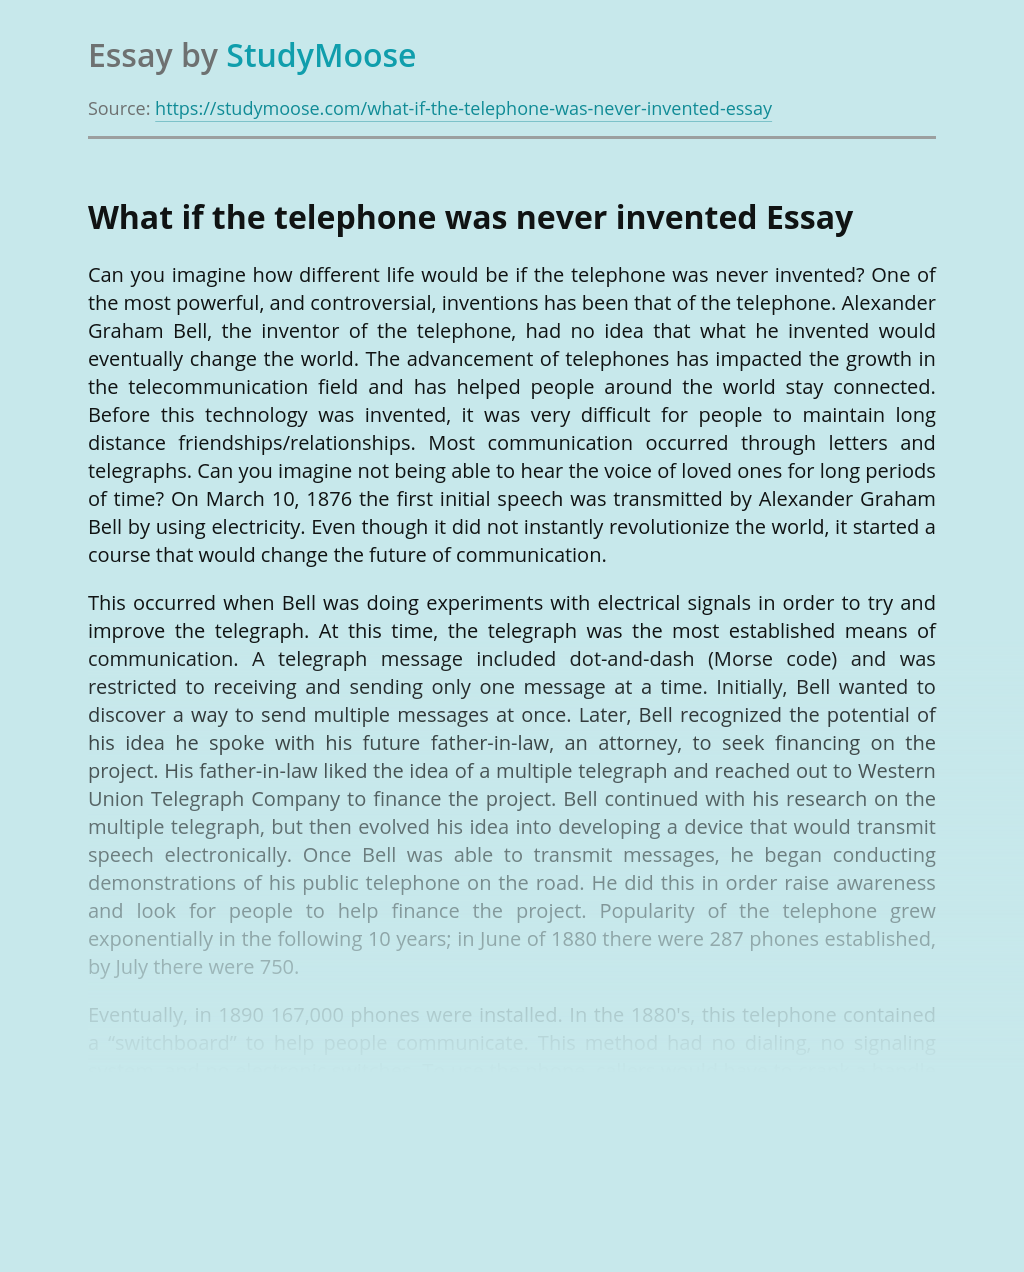 What if the telephone was never invented